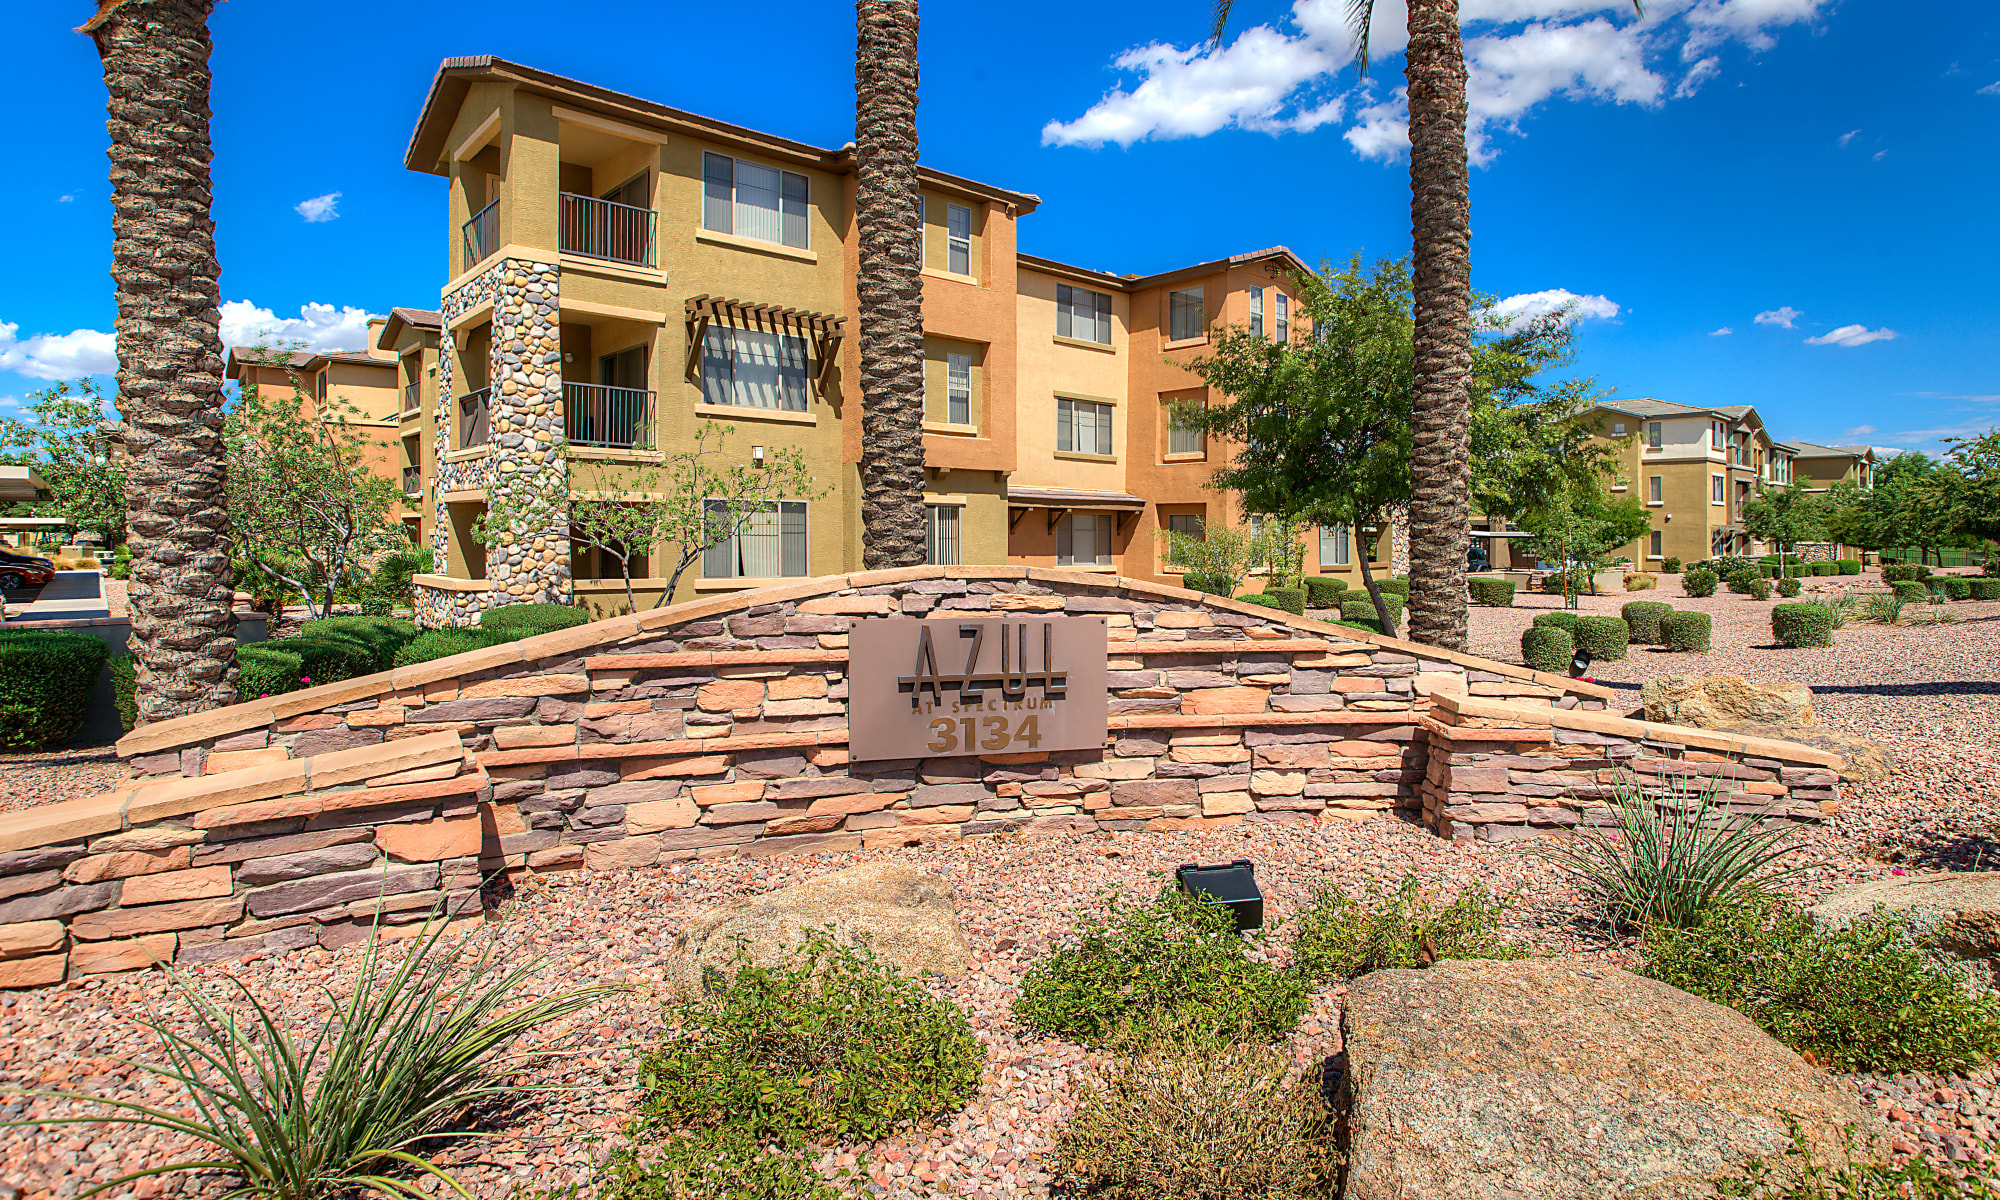 Apartments at Azul at Spectrum in Gilbert, Arizona